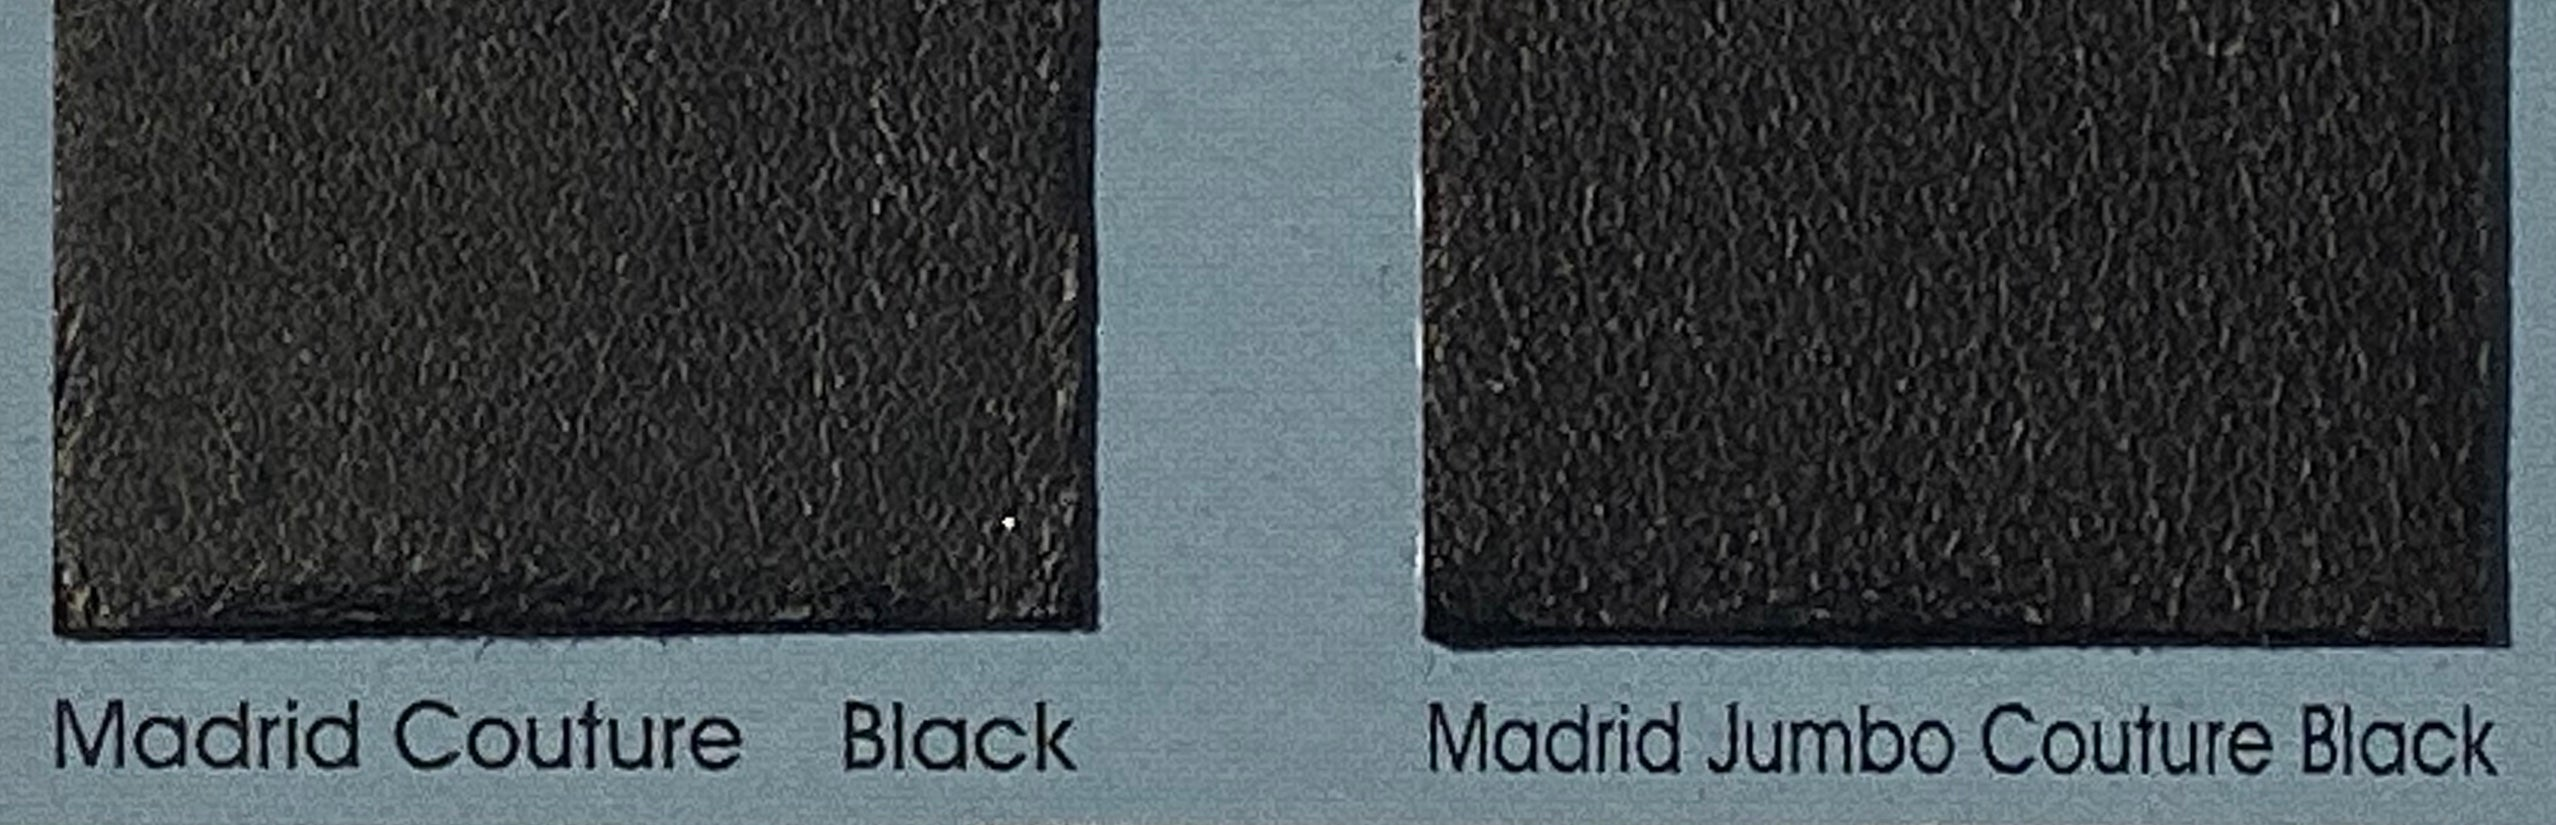 Madrid Black Couture Leather Skin : Italian Lamb Nappa (0.6-0.7mm). Perfect for Clothing, Leather Trousers, Leather Crafts